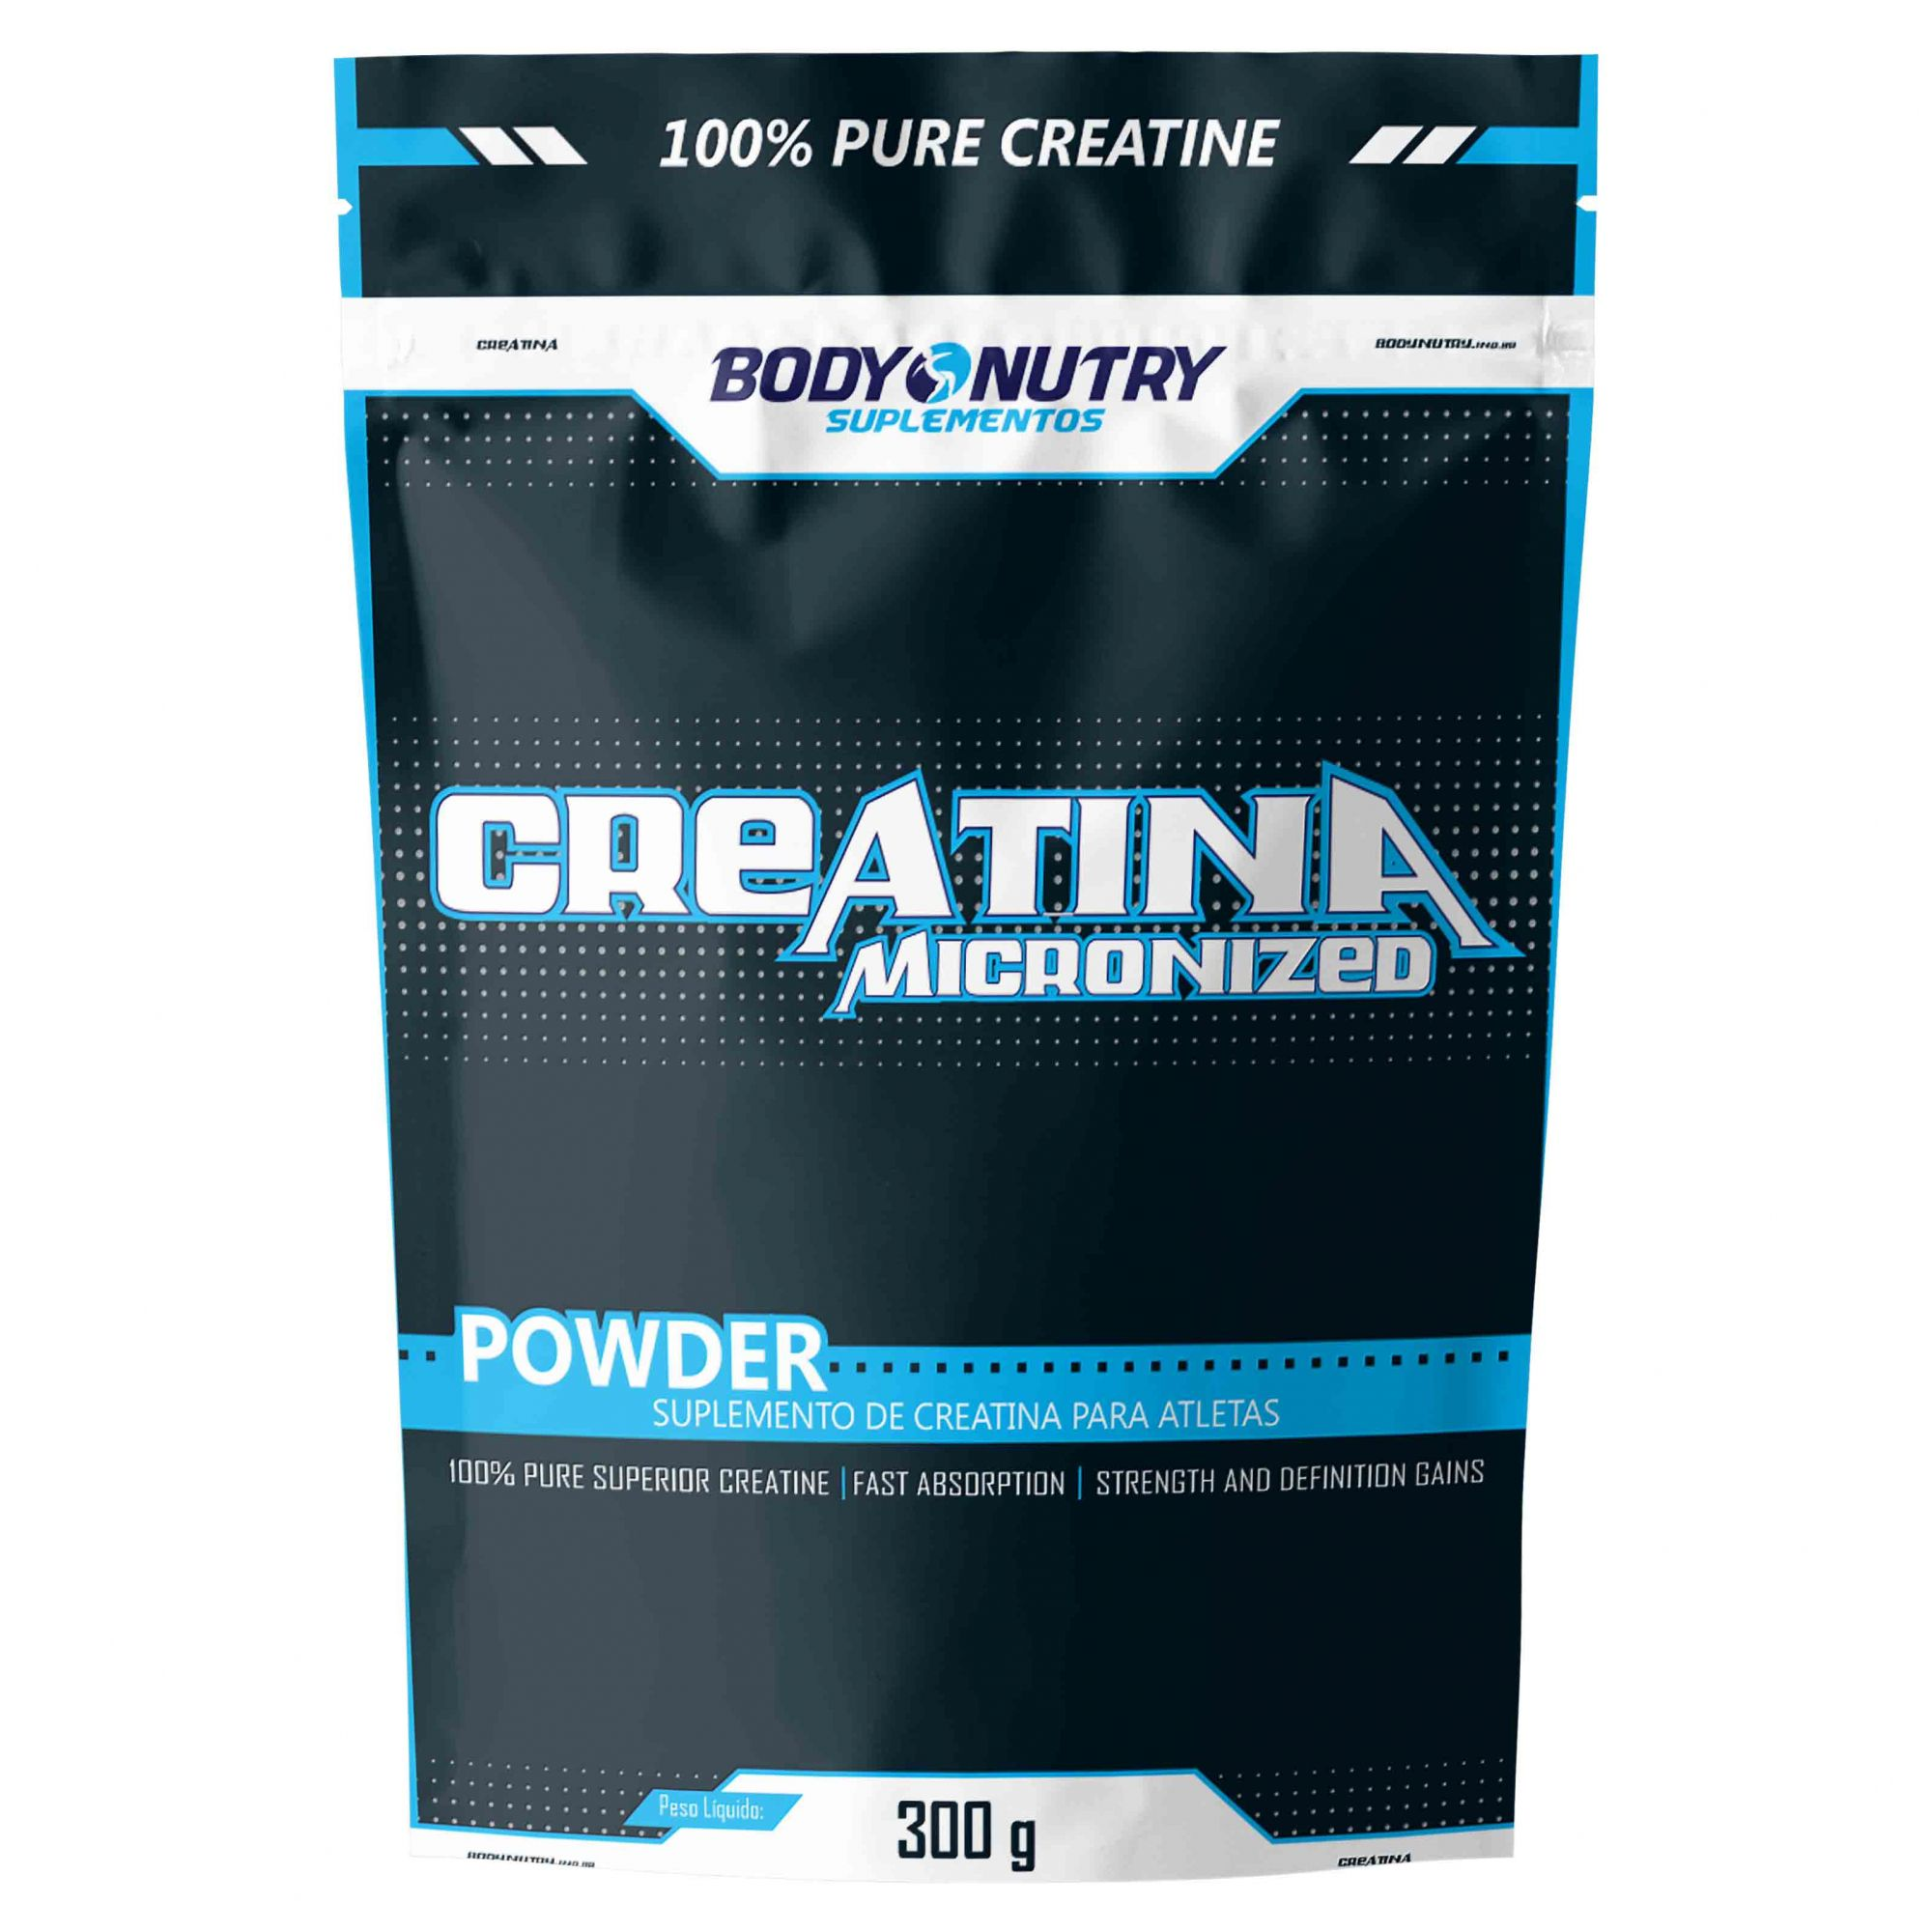 Creatina Micronizada Refil 300g Body Nutry